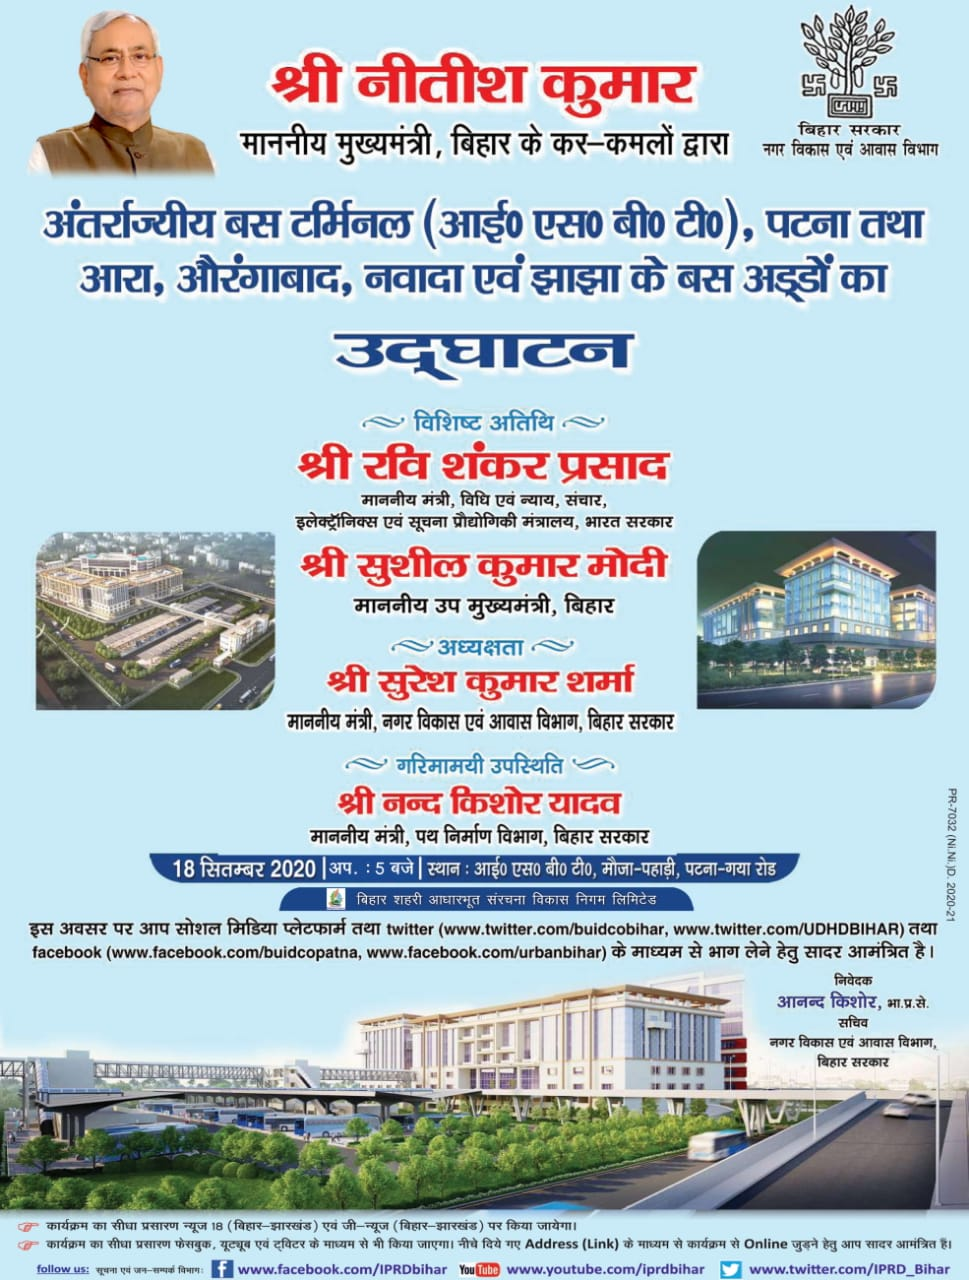 CM Nitish Kumar to inaugurate state of the art interstate bus terminus (ISBT)